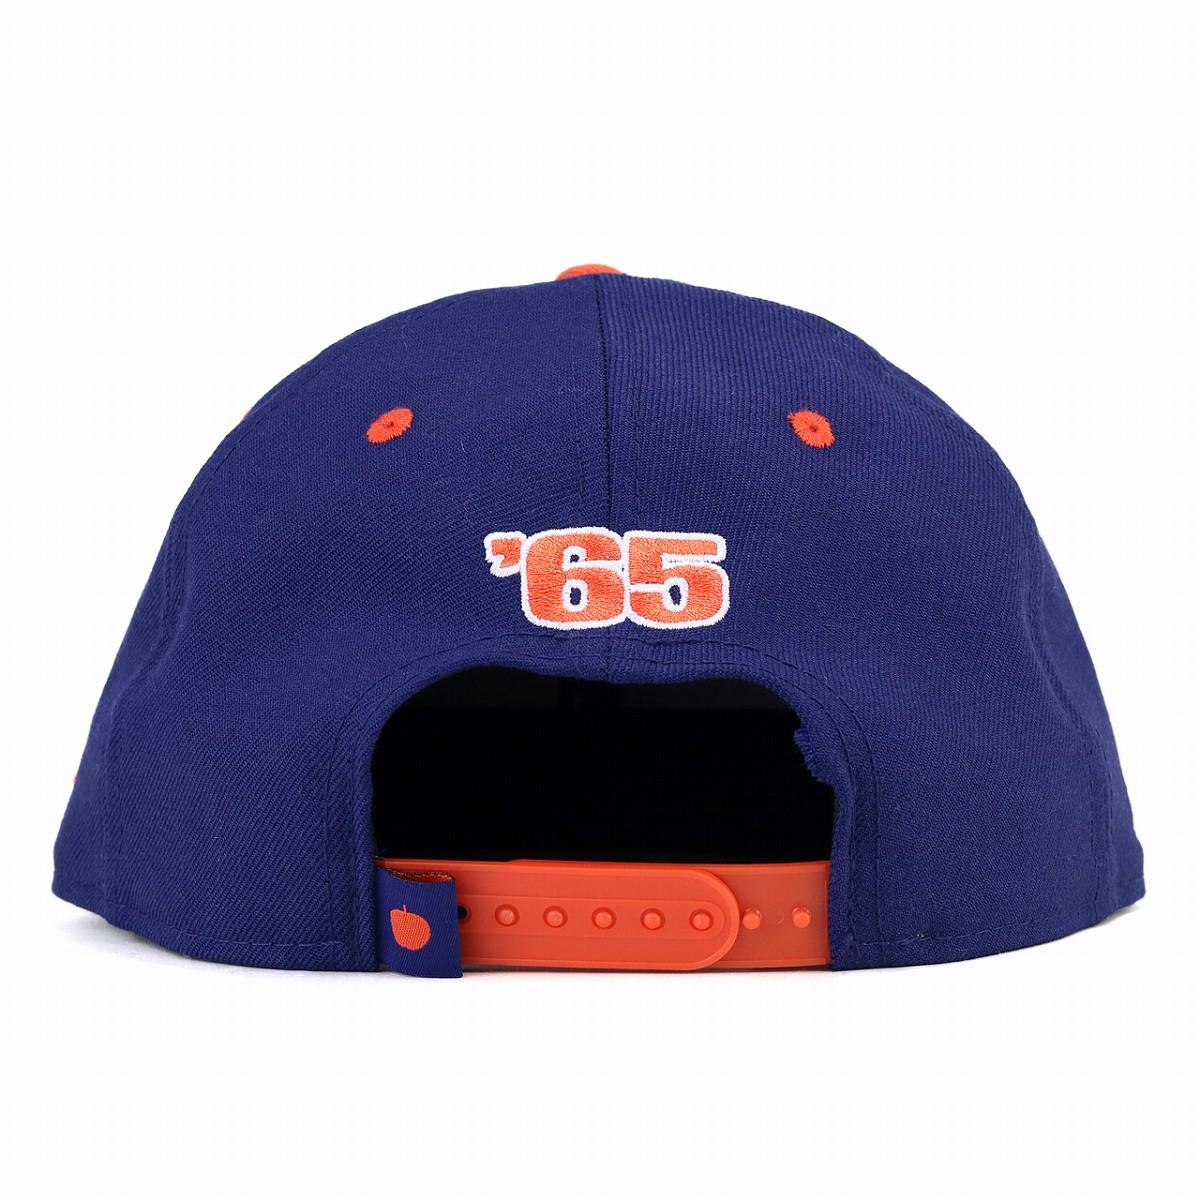 The Beatles '65 Baseball Hat